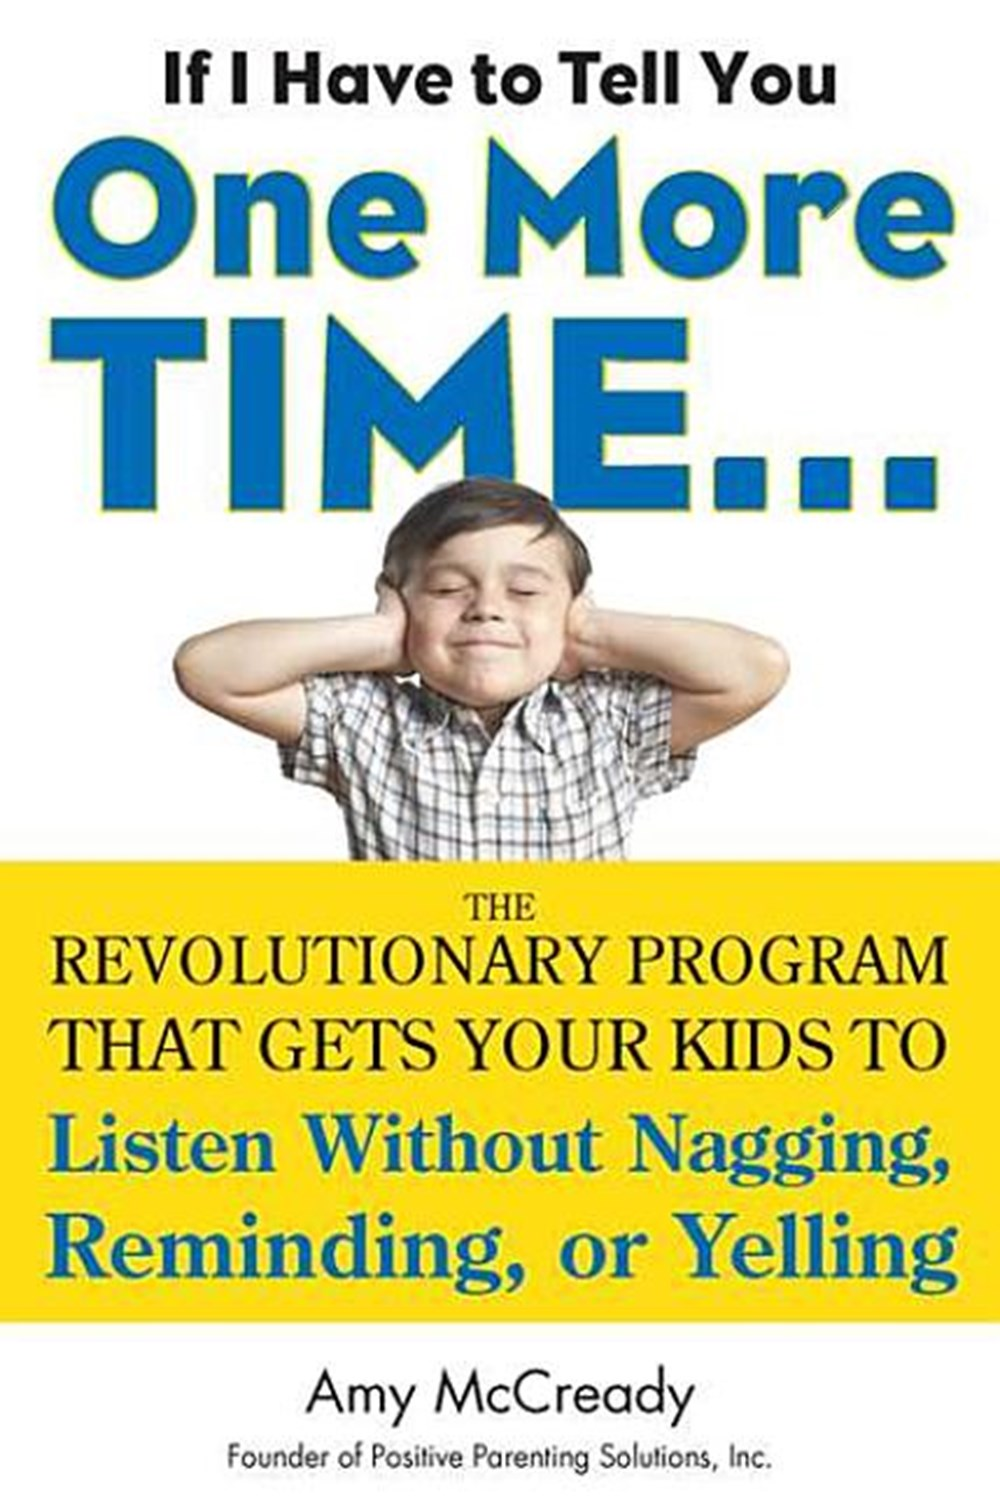 If I Have to Tell You One More Time... The Revolutionary Program That Gets Your Kids to Listen Witho